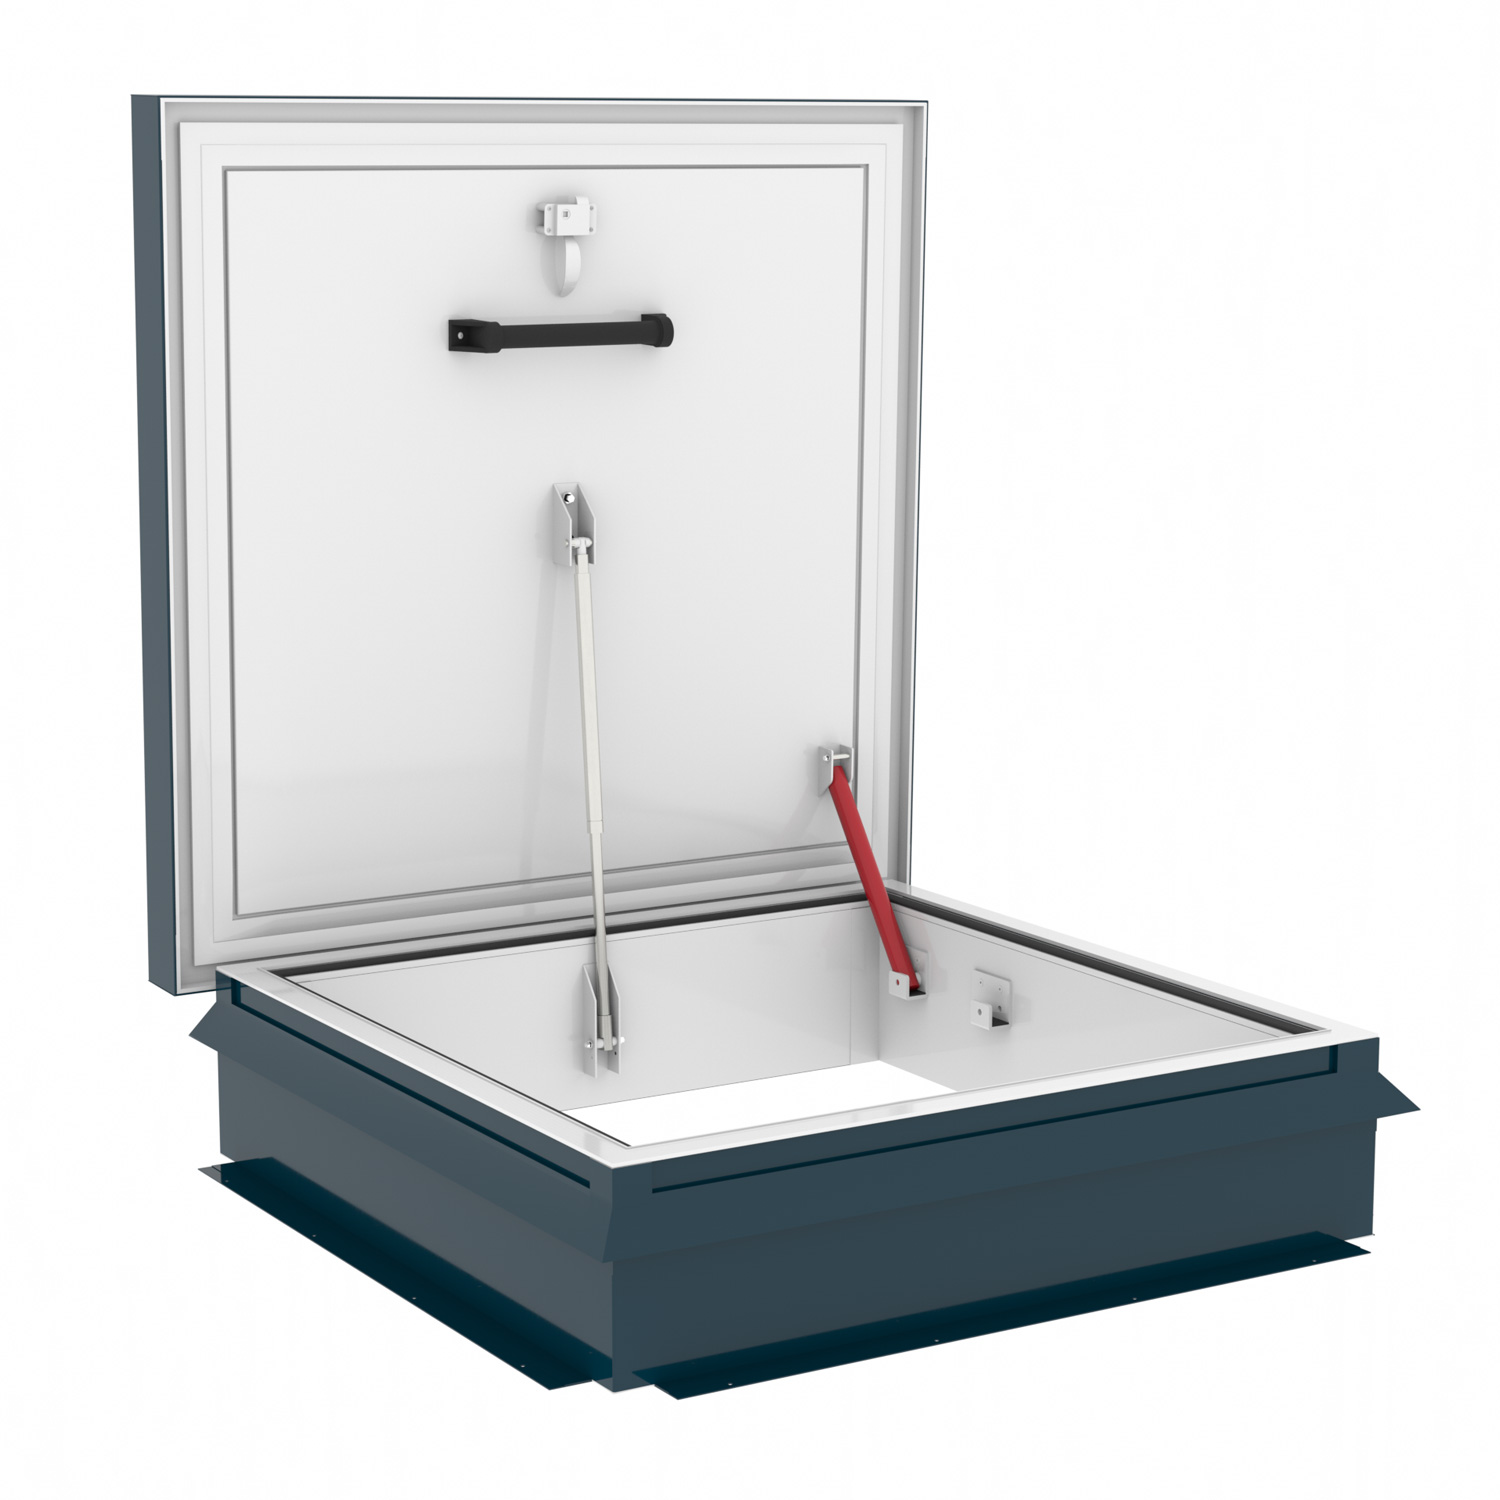 SRHTB/FR - Fire Rated Roof Access Hatch   Surespan